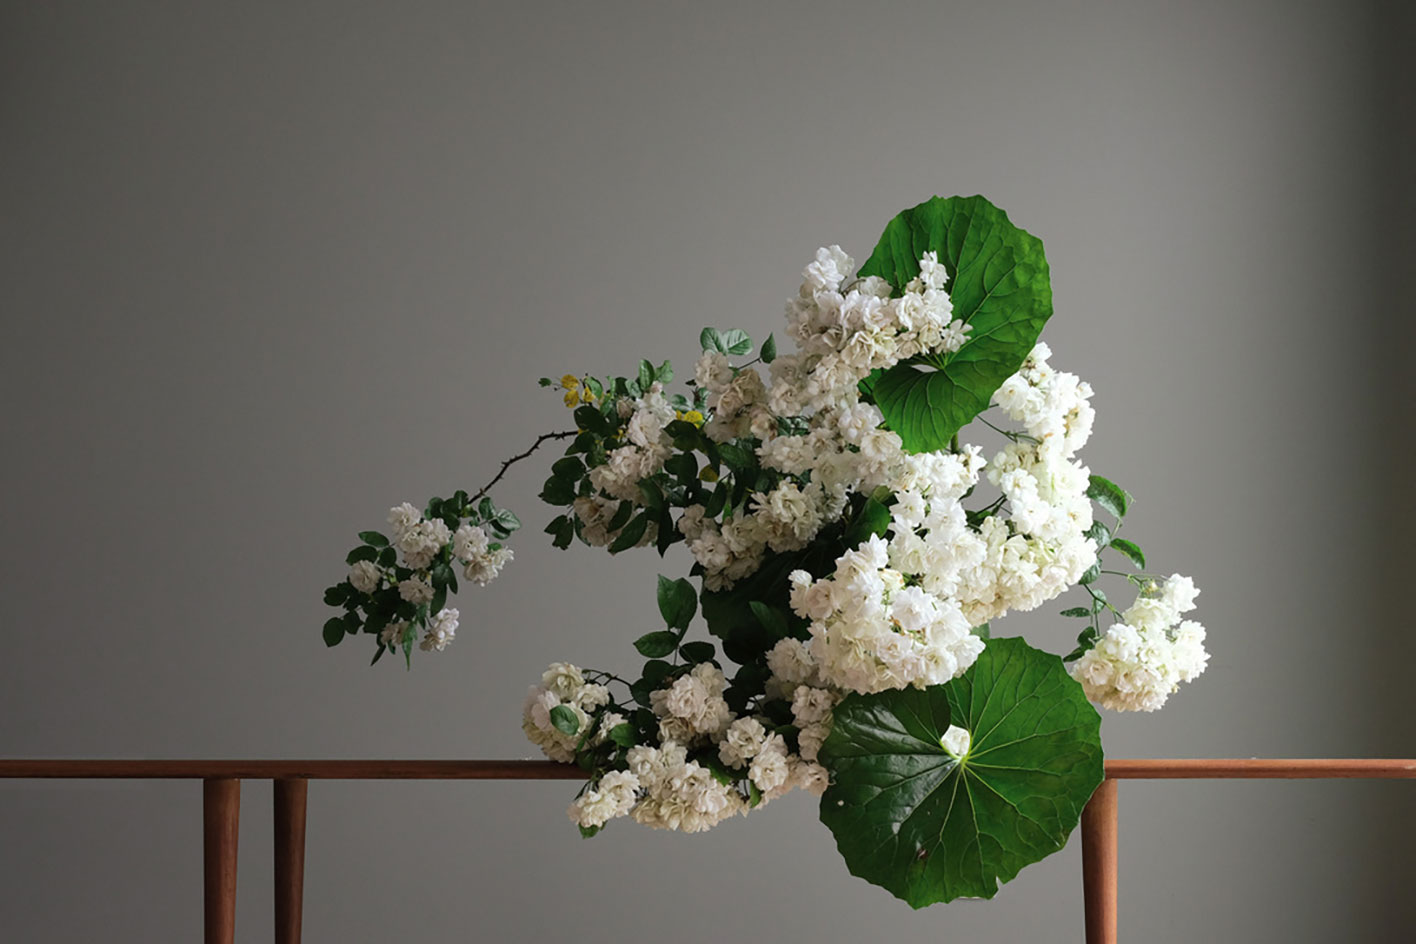 Installation by floral artist Wagner for Matchesfashion.com